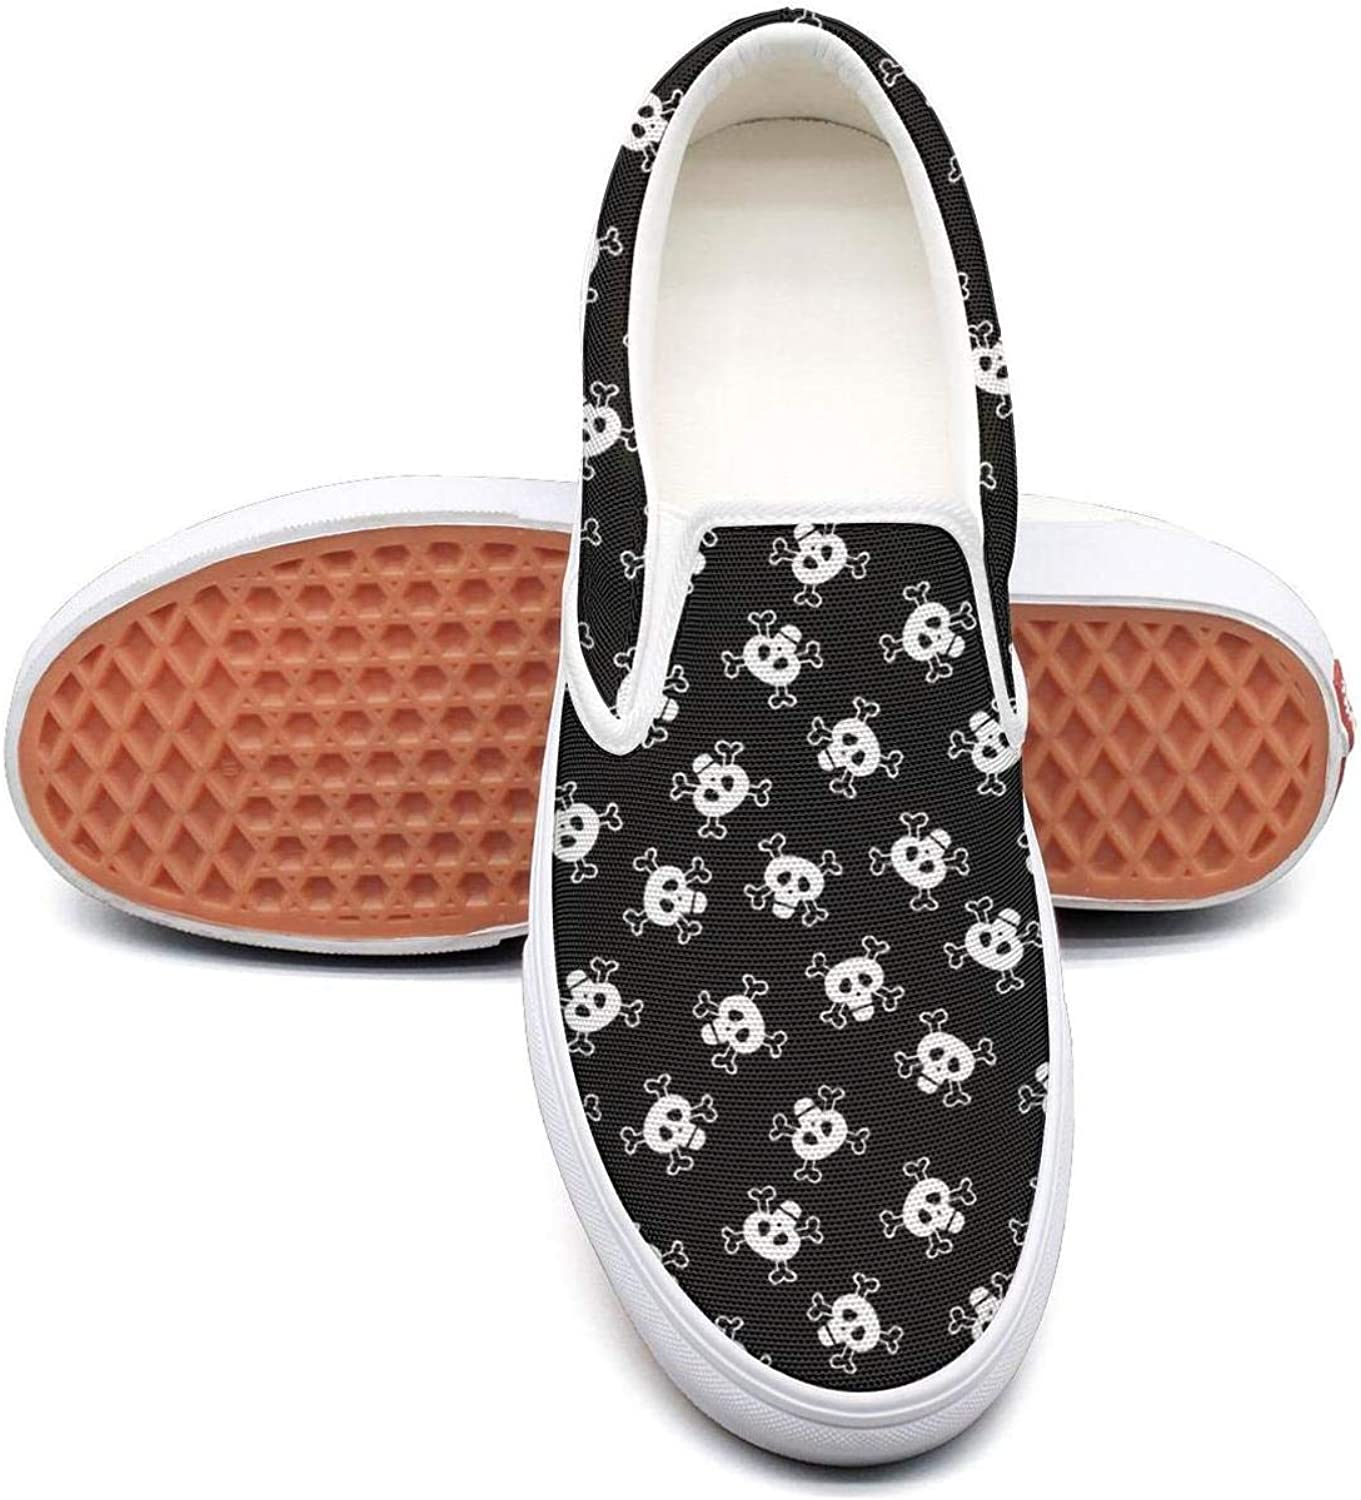 Skulls Fun Halloween Slip On Rubber Sole Loafers Canvas shoes for Women Fashion